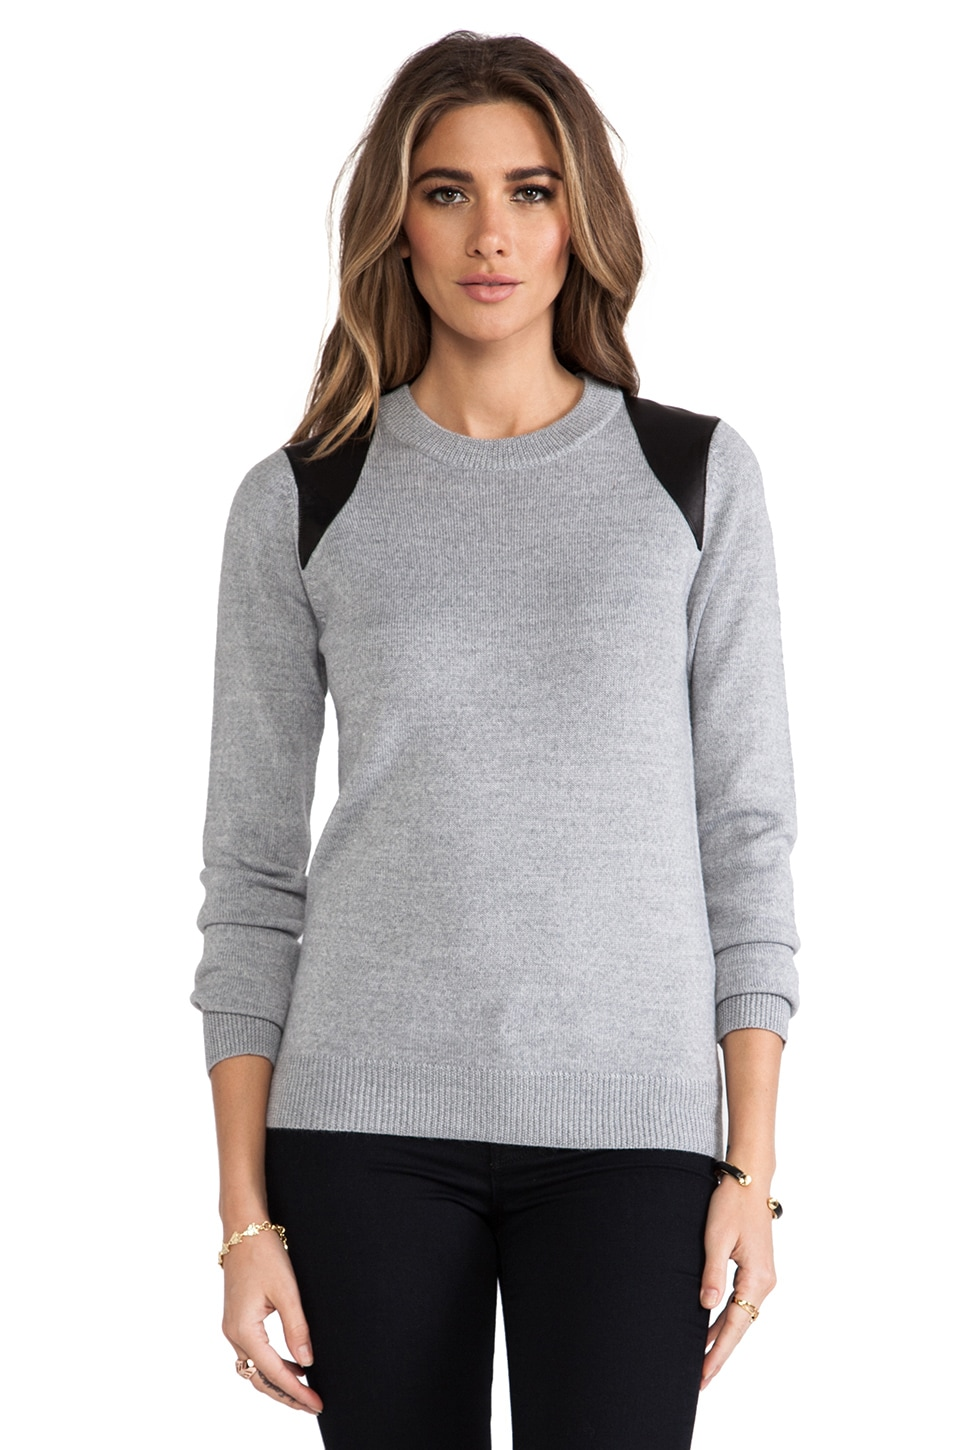 Cut25 by Yigal Azrouel Leather Printed Paneled Crewneck Sweater in Heather Grey